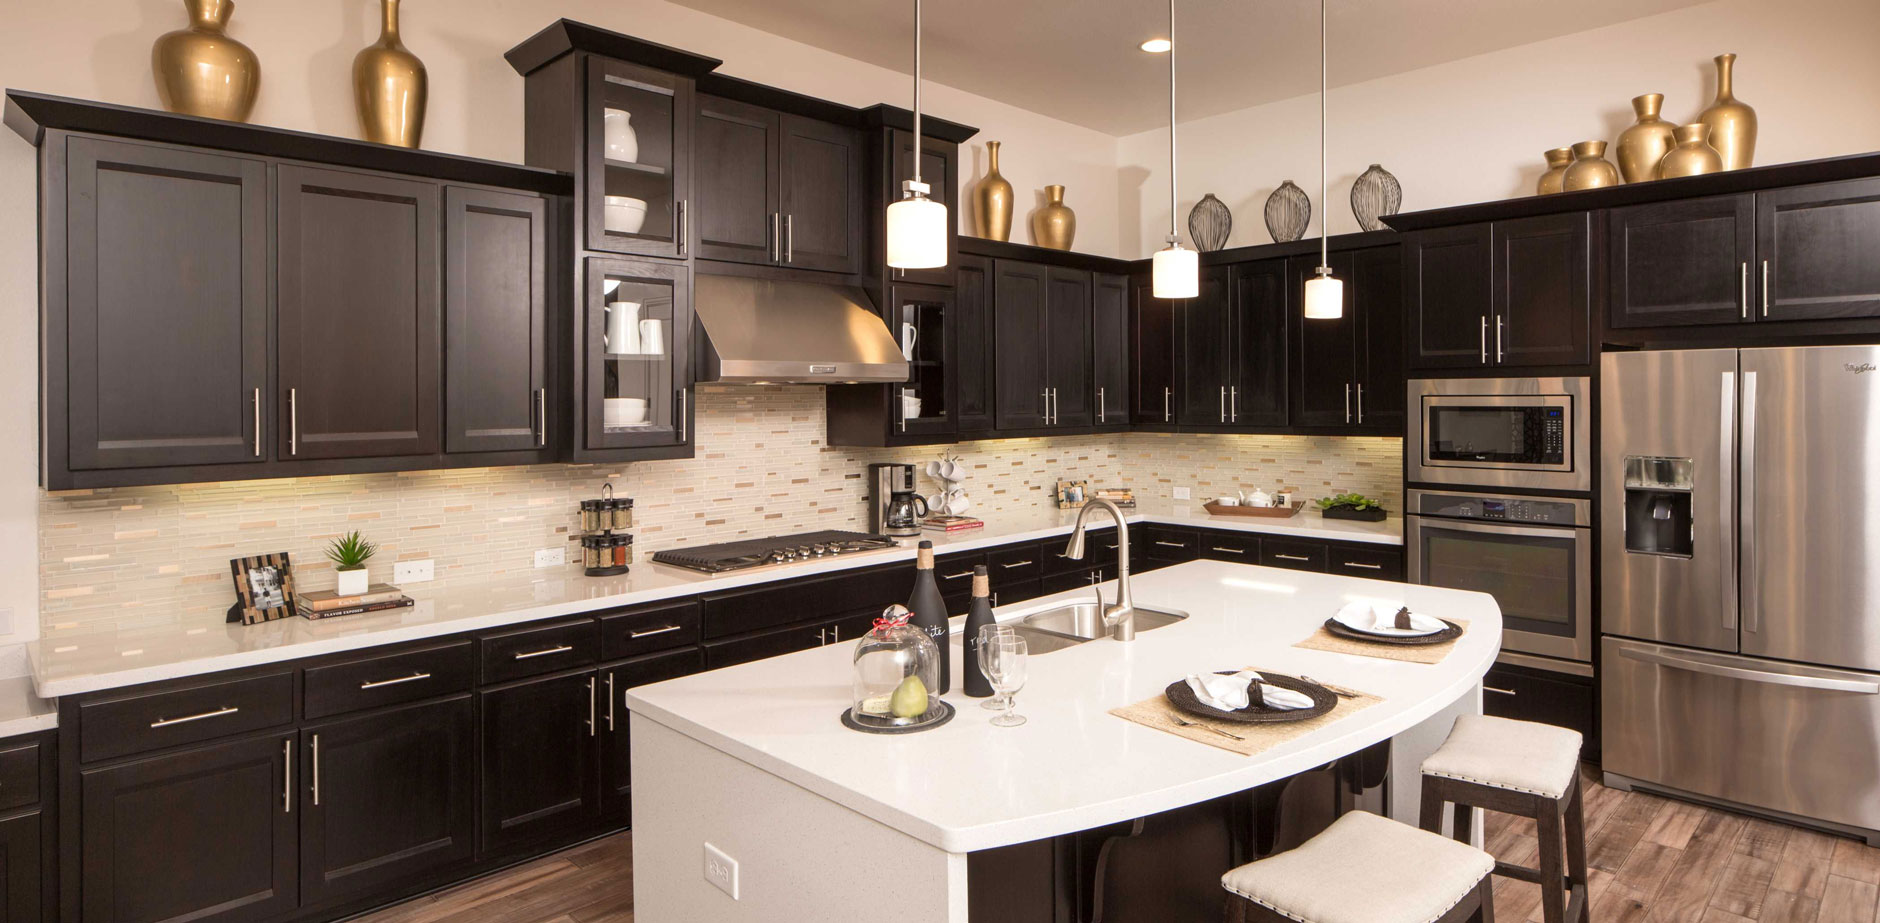 Kitchen 074 - Burrows Cabinets - central Texas builder ...